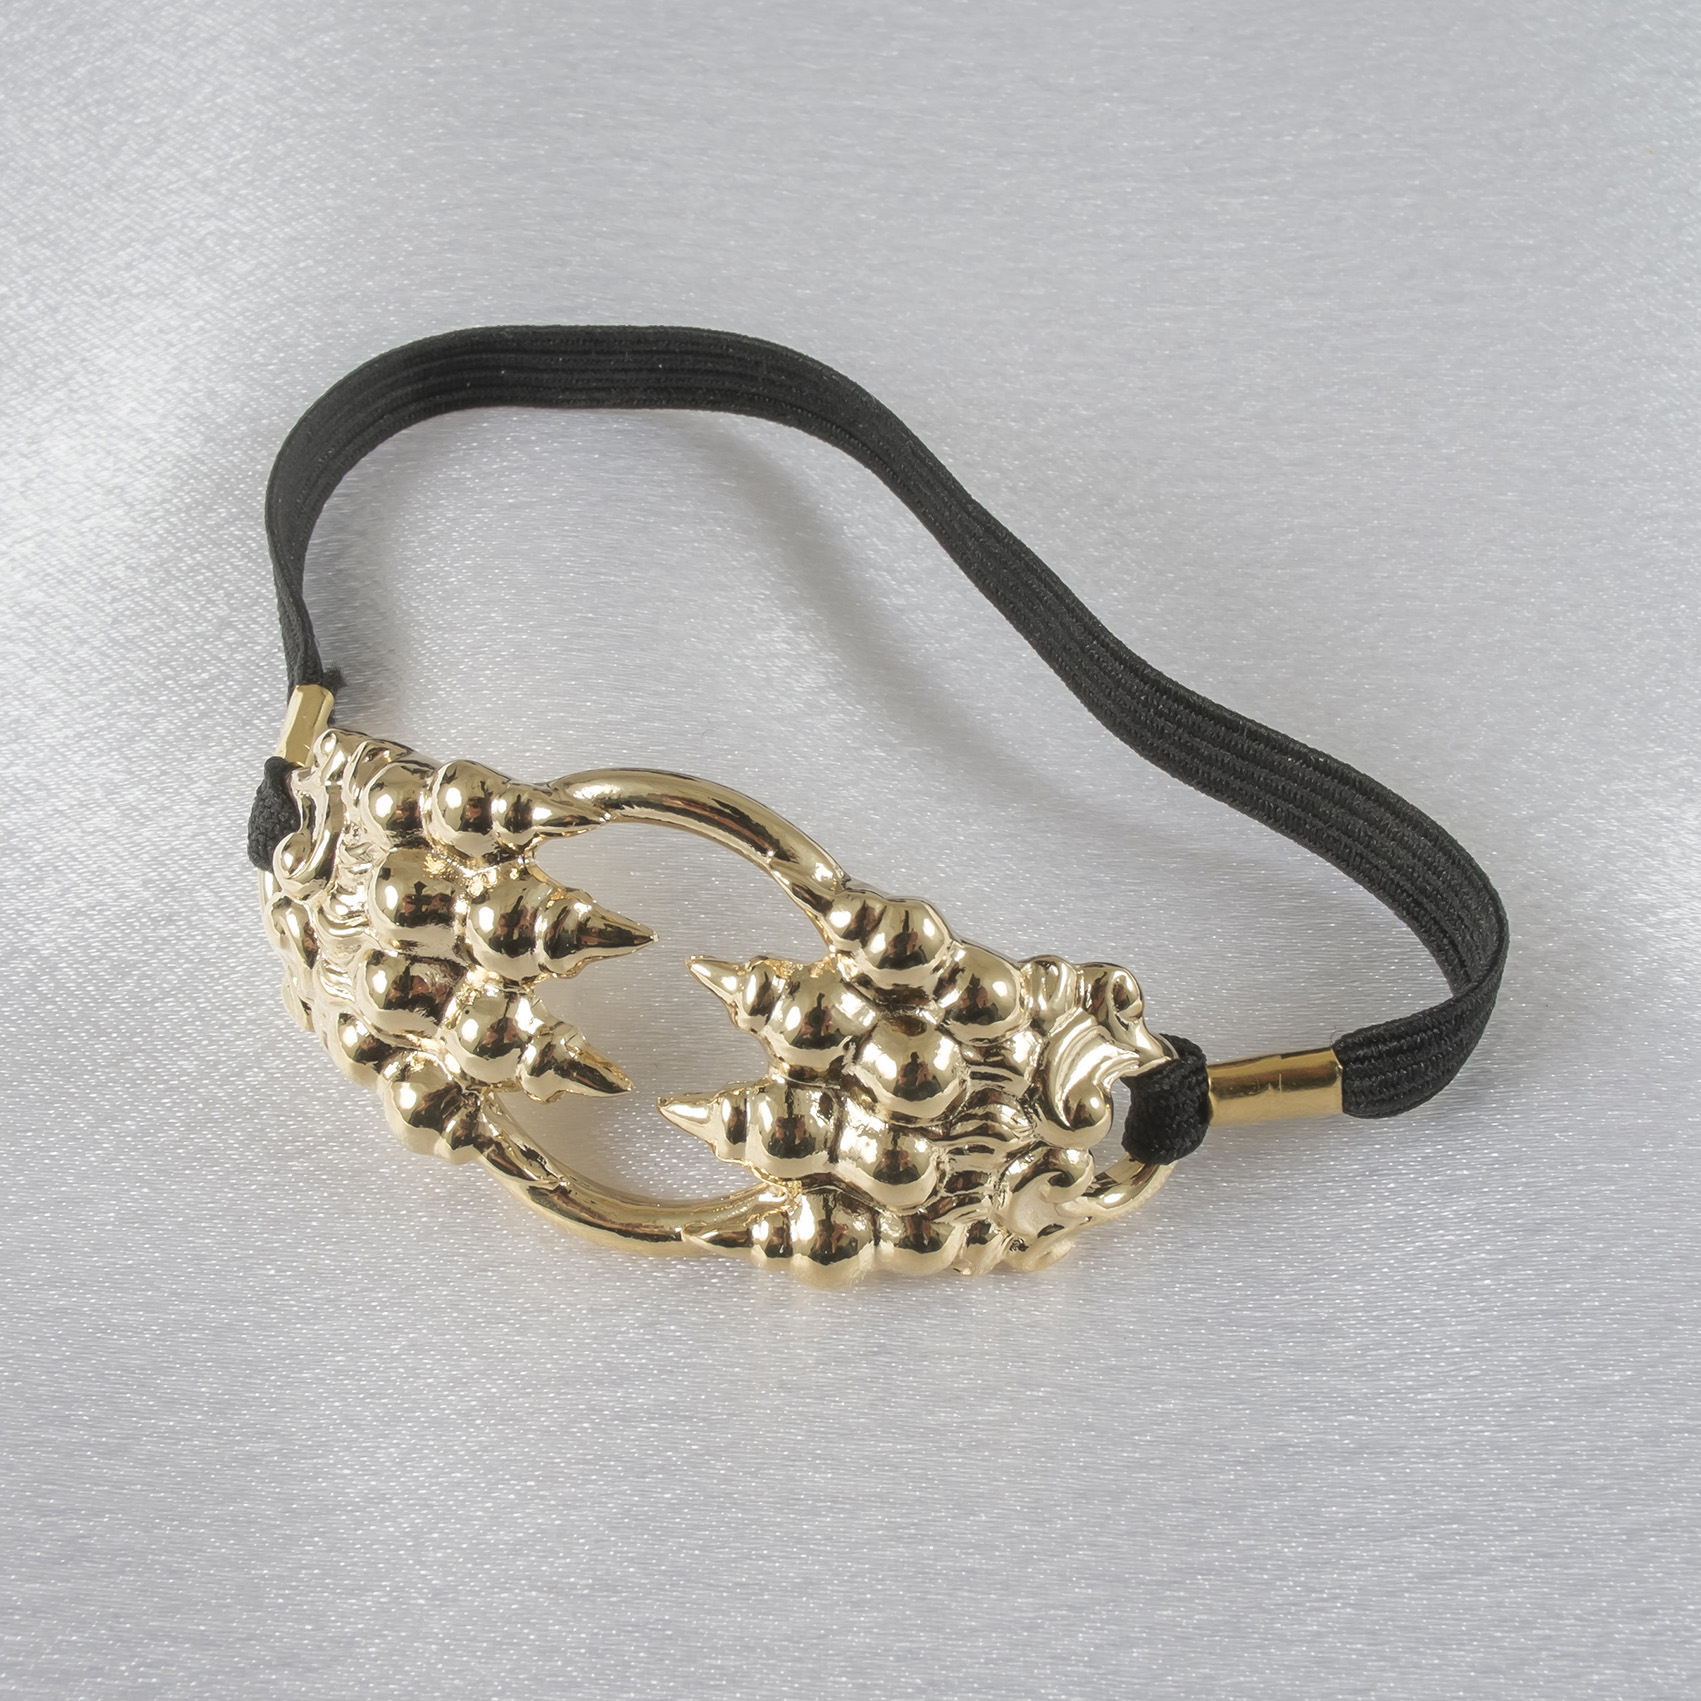 BH142 Men's Gold Claw Penis Chain Bracelet